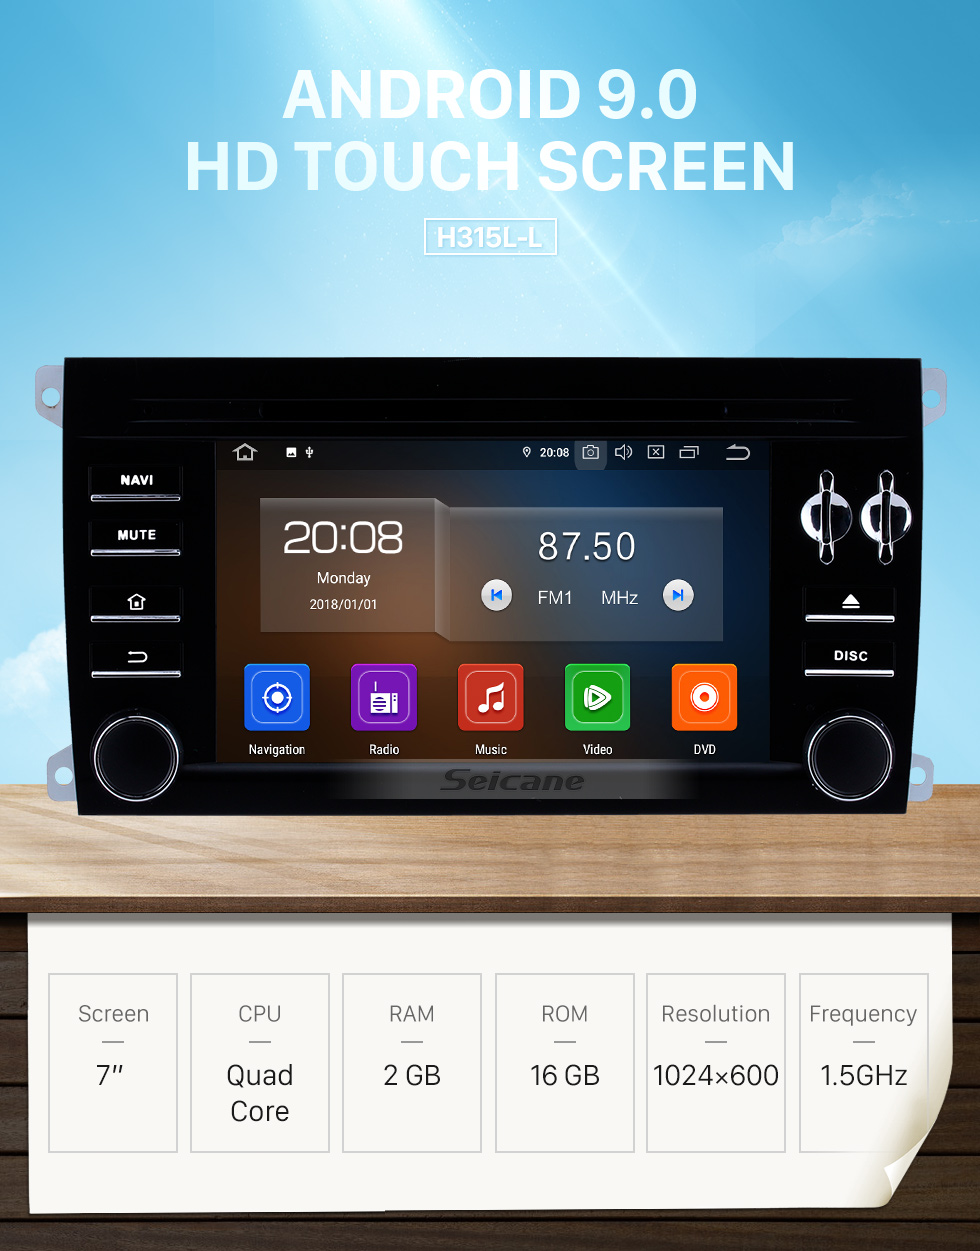 Seicane HD 1024 * 600 touchscreen 2003-2011 Porsche Cayenne Android 9.0 Rádio Substituição com Aftermarket GPS DVD Player 3G WiFi Bluetooth Música Espelho Link OBD2 Câmera de backup DVR AUX MP3 MP4 HD 1080P